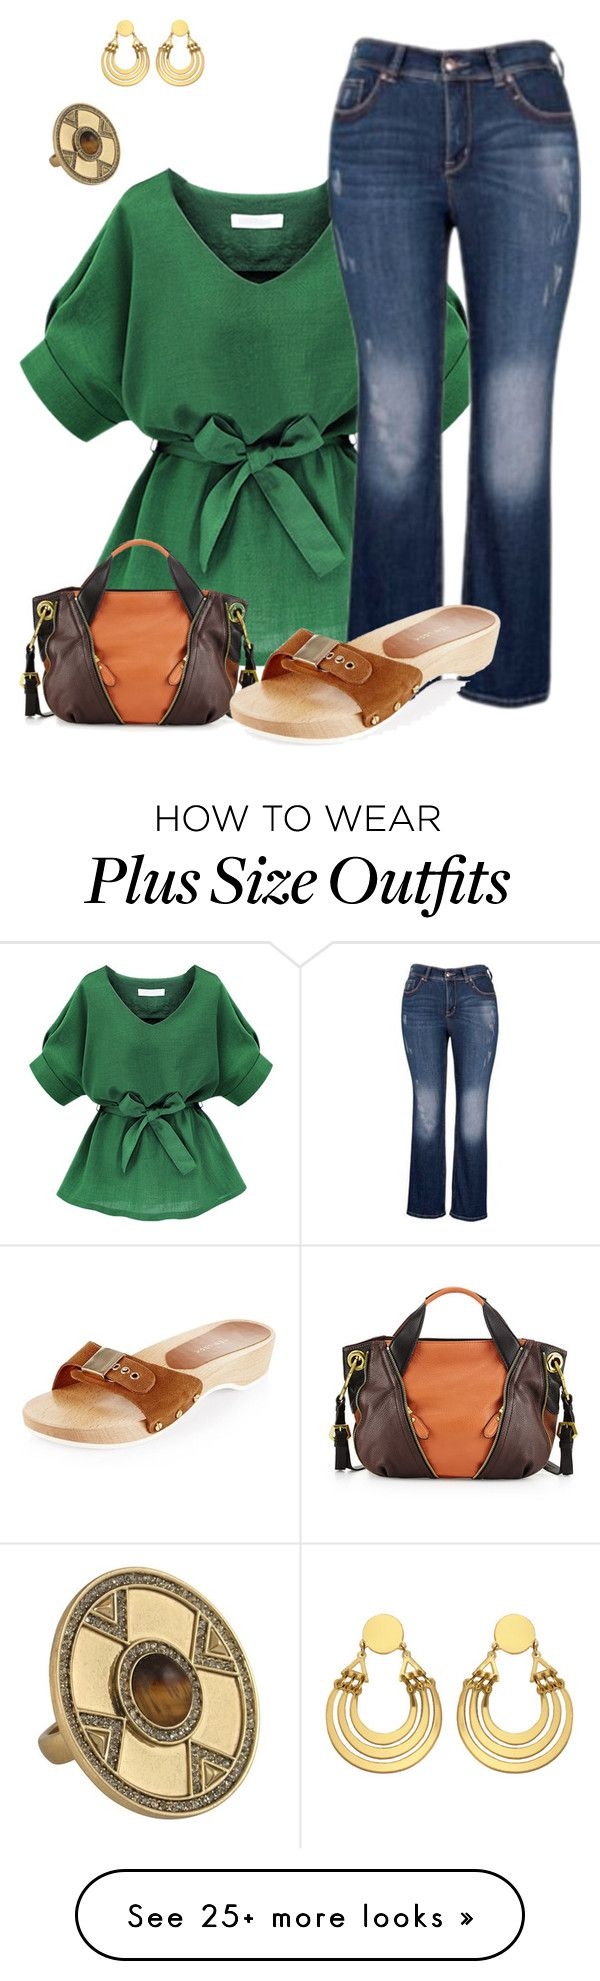 """plus size boho  chic"" by kristie-payne on Polyvore featuring mode, Melissa McCarthy Seven7, Oryany, House of Harlow 1960, women's clothing, women, female, woman, misses en juniors"